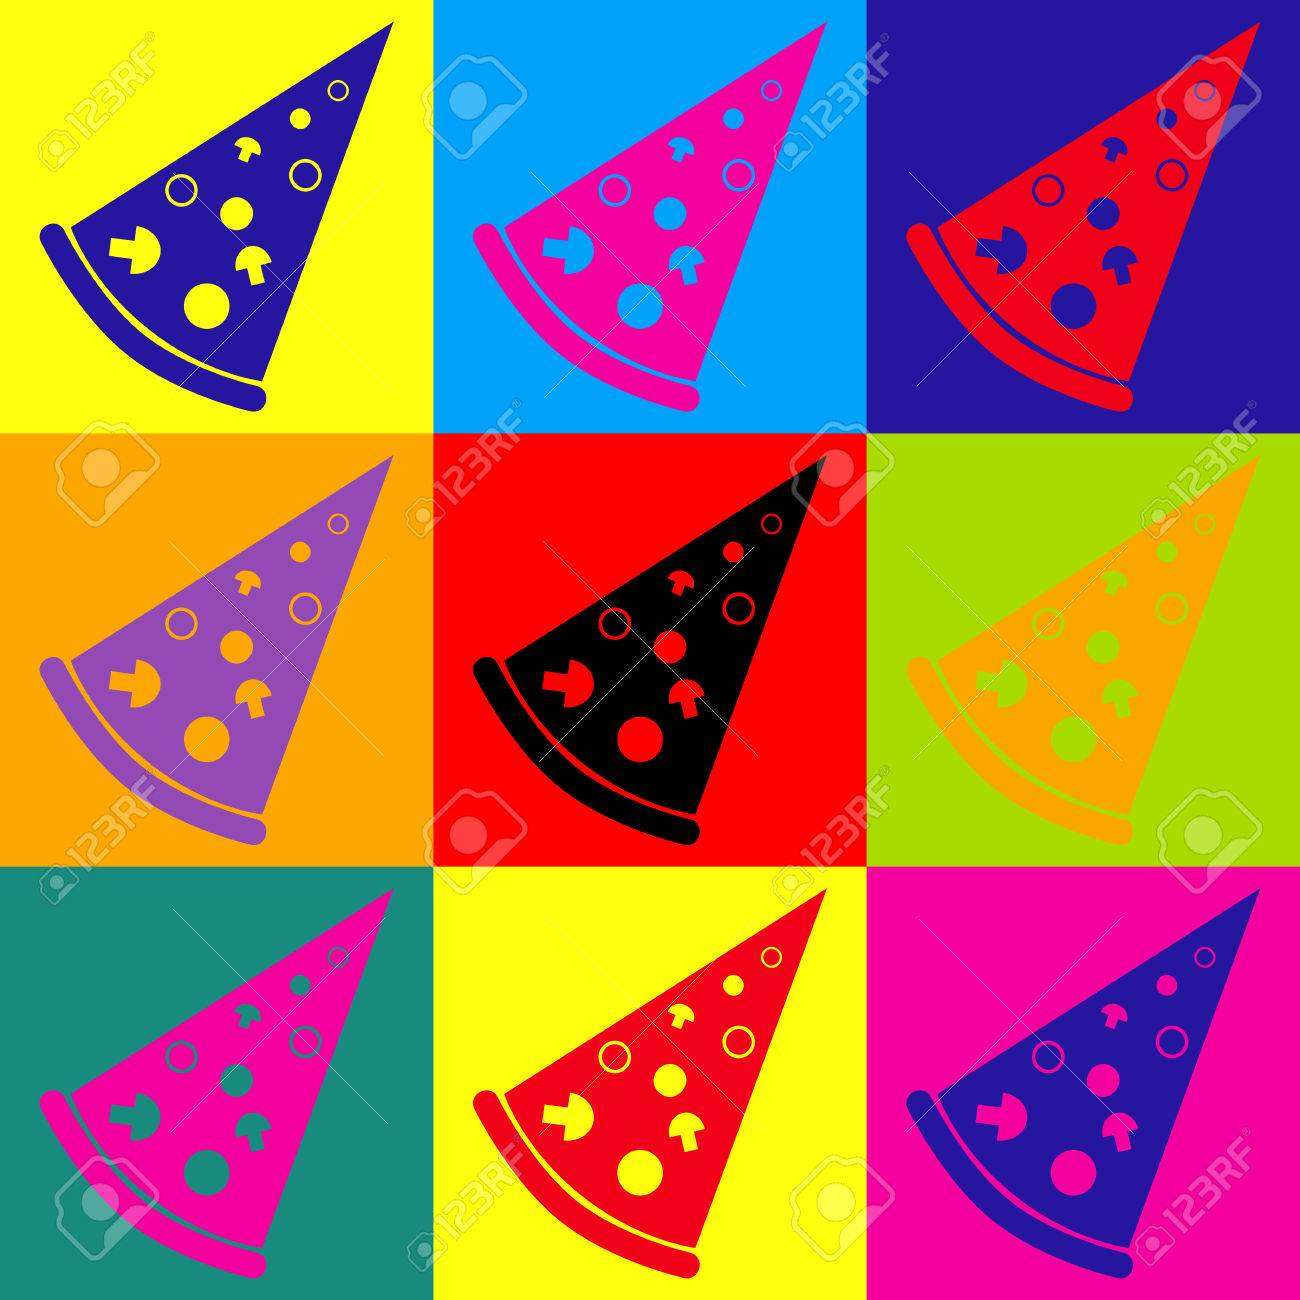 Pizza Simple Icon Pop Art Style Colorful Icons Set Royalty Free